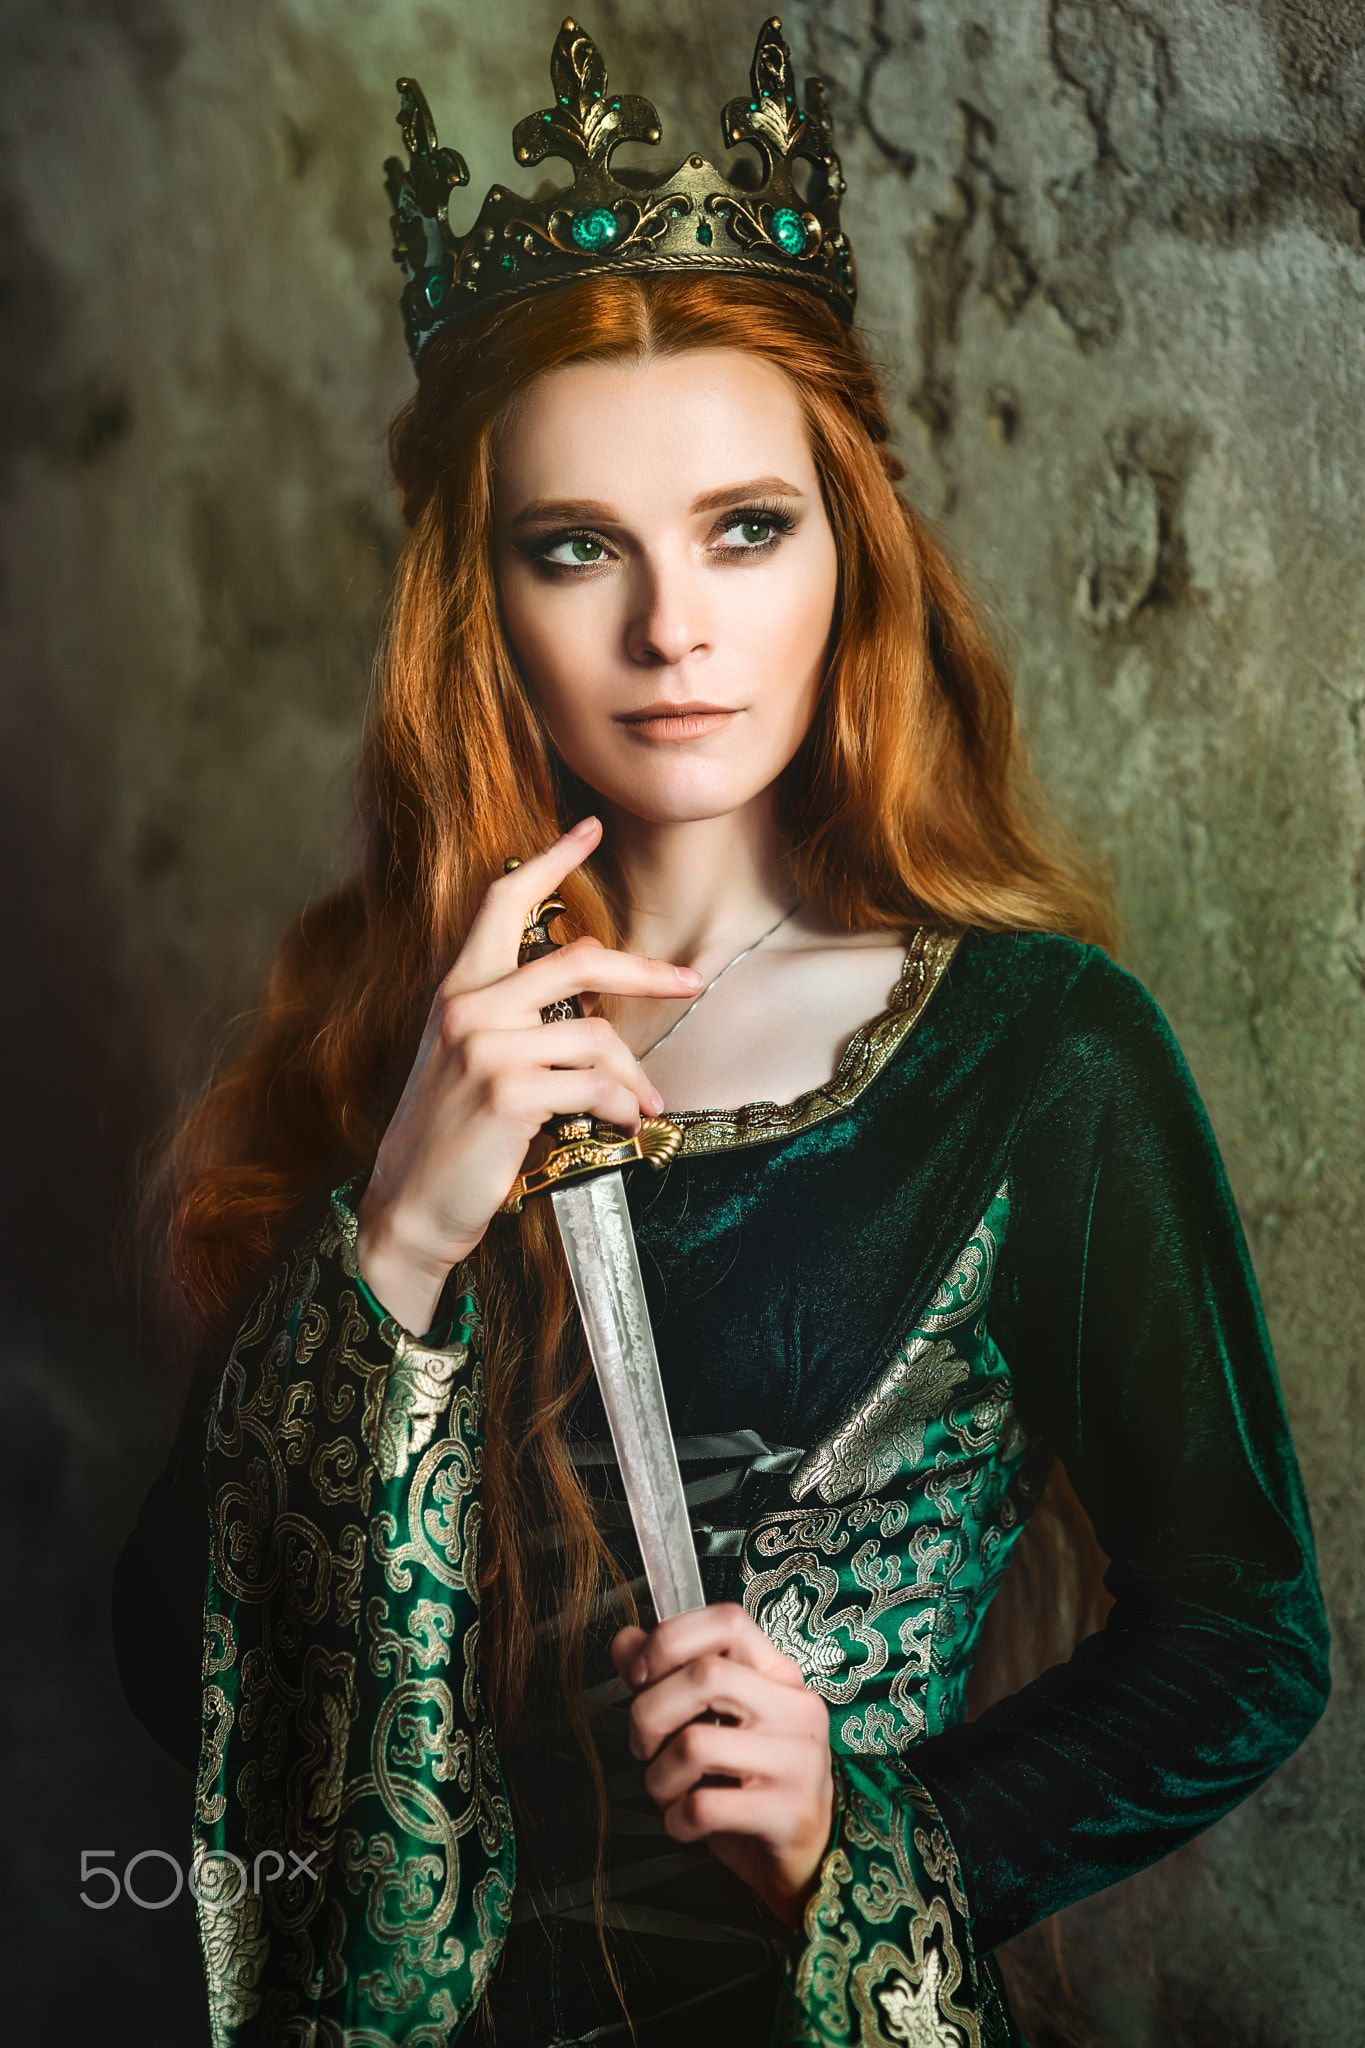 Ginger Queen Near The Castle Red Haired Woman In A Green Medieval Dress Near The Castle Medieval Dress Women Red Hair